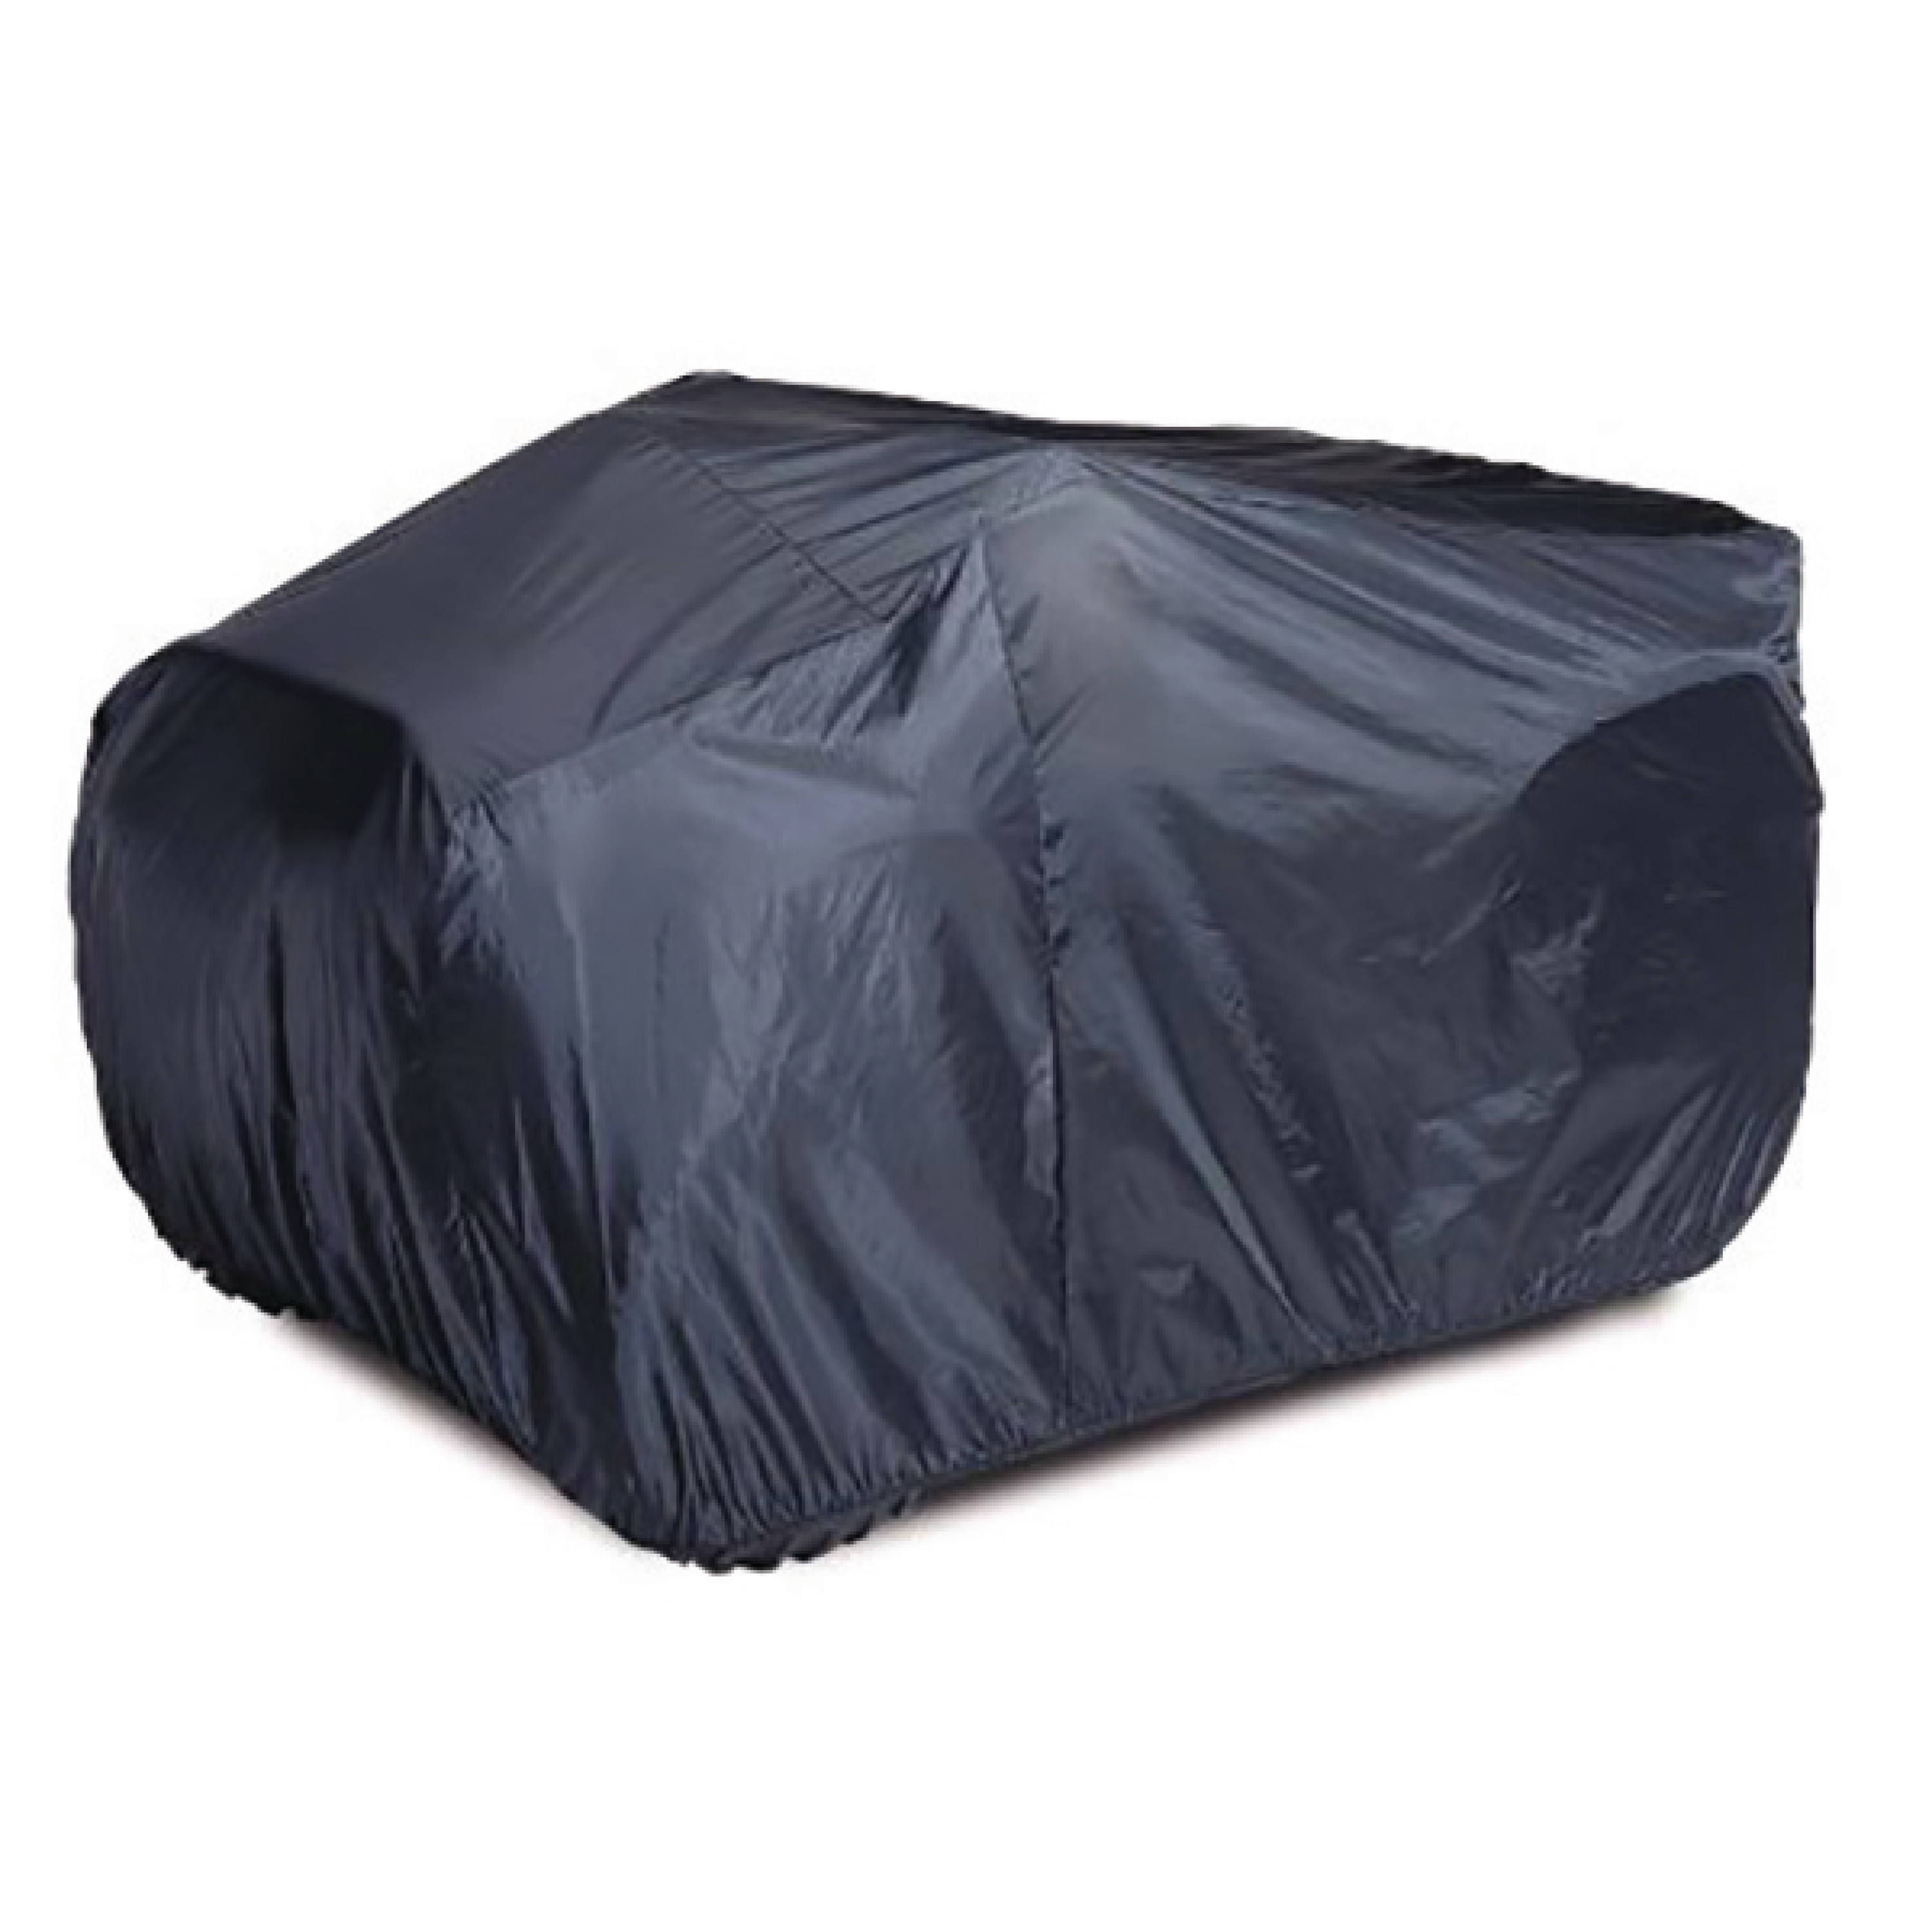 Dowco Guardian 26041-01 XXL Water Resistant Outdoor Black ATV Cover